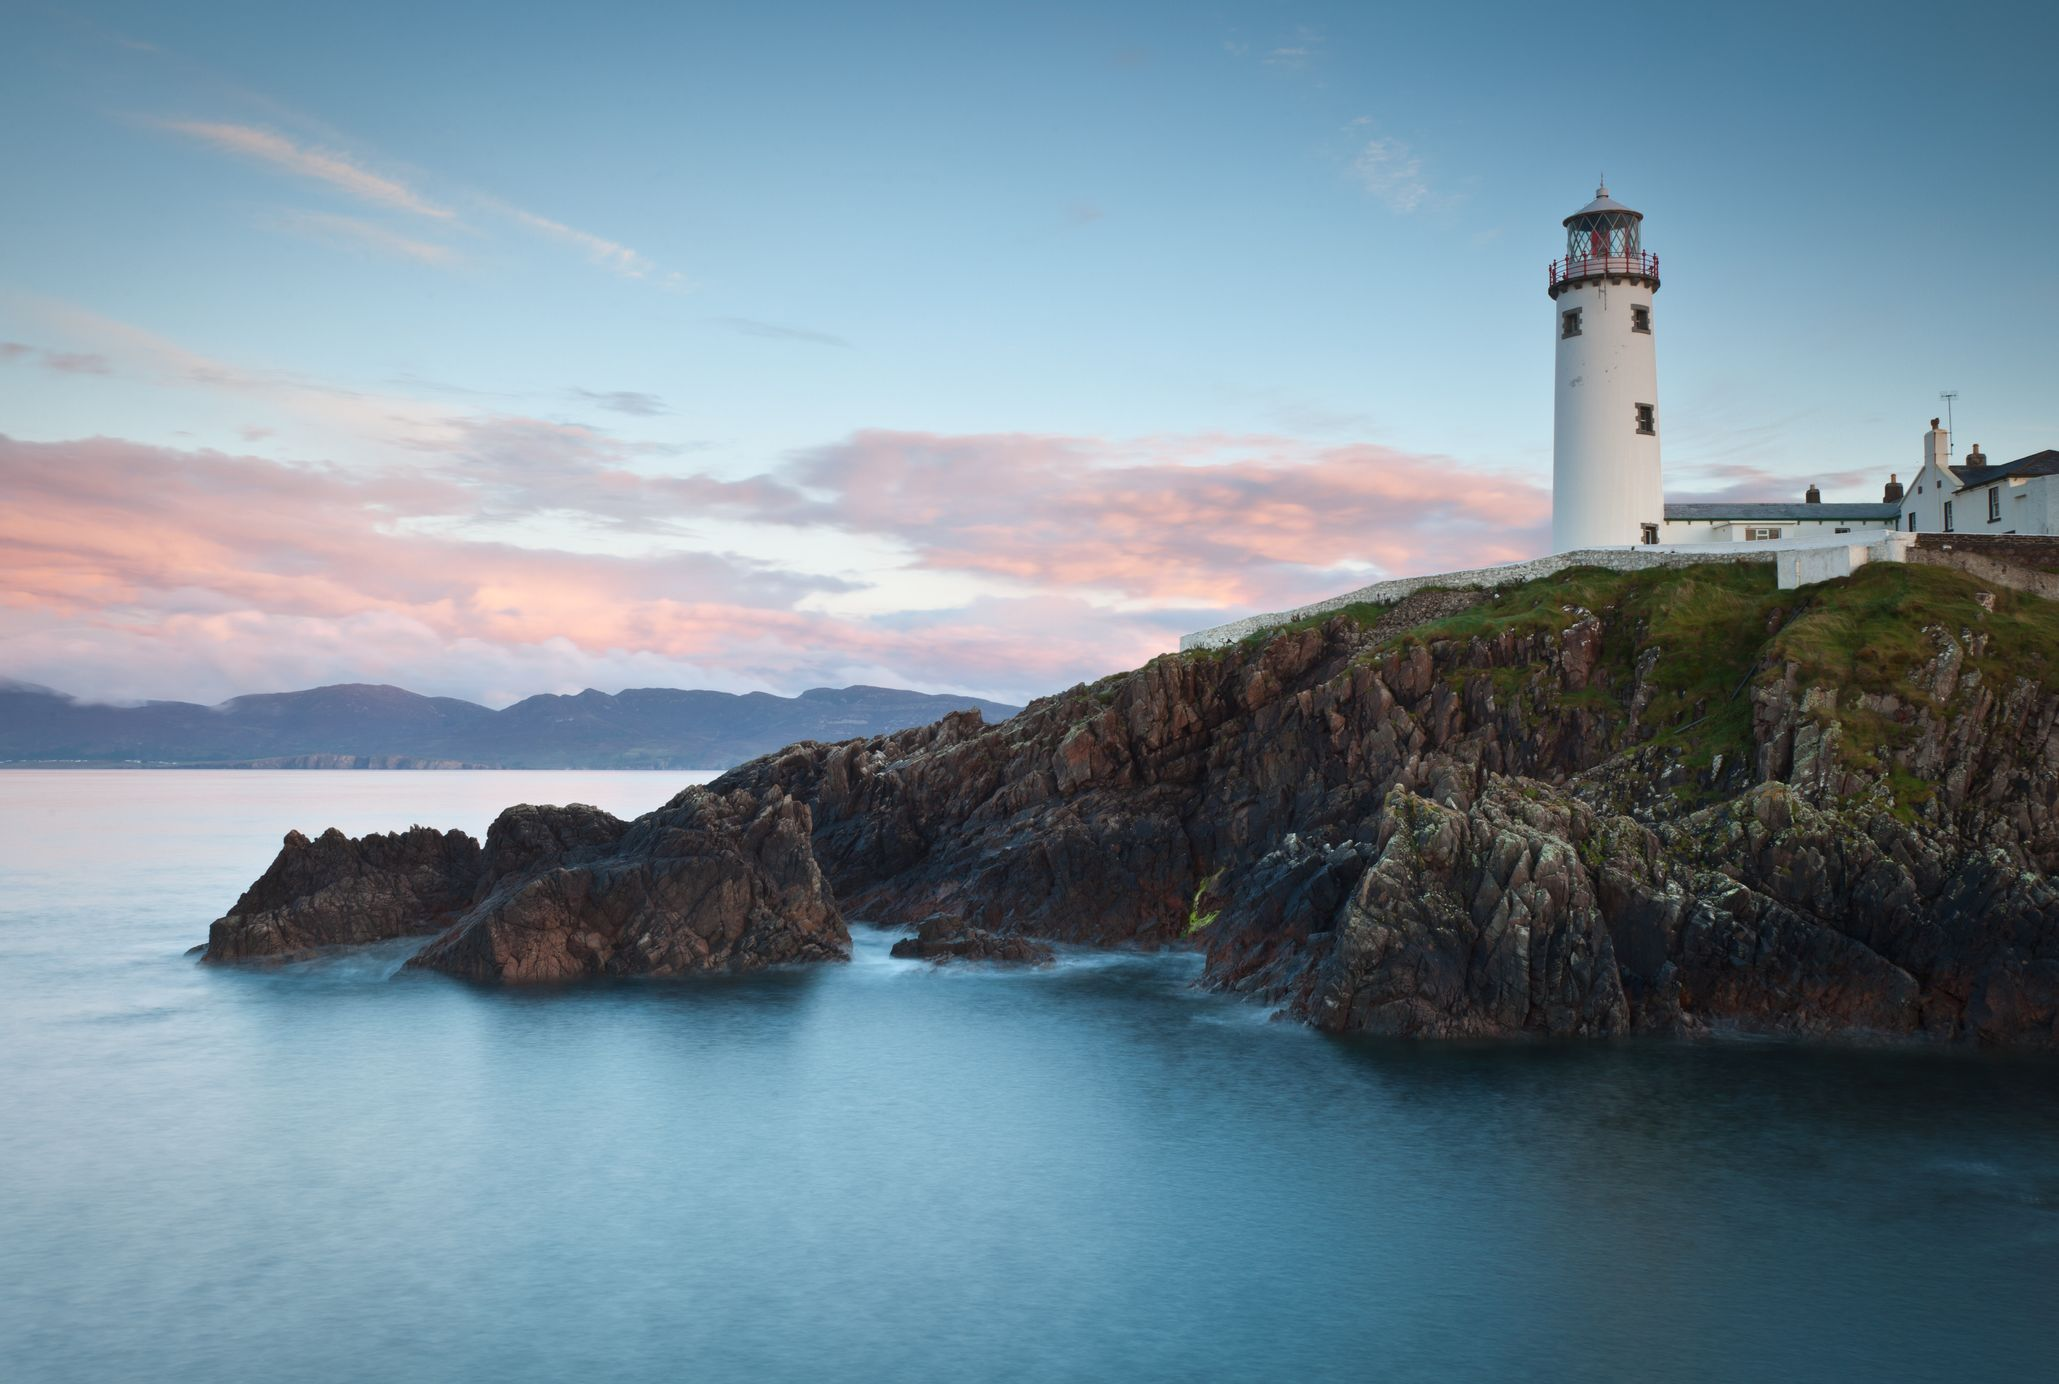 The Mystery of the Missing Keepers at the Flannan Isles